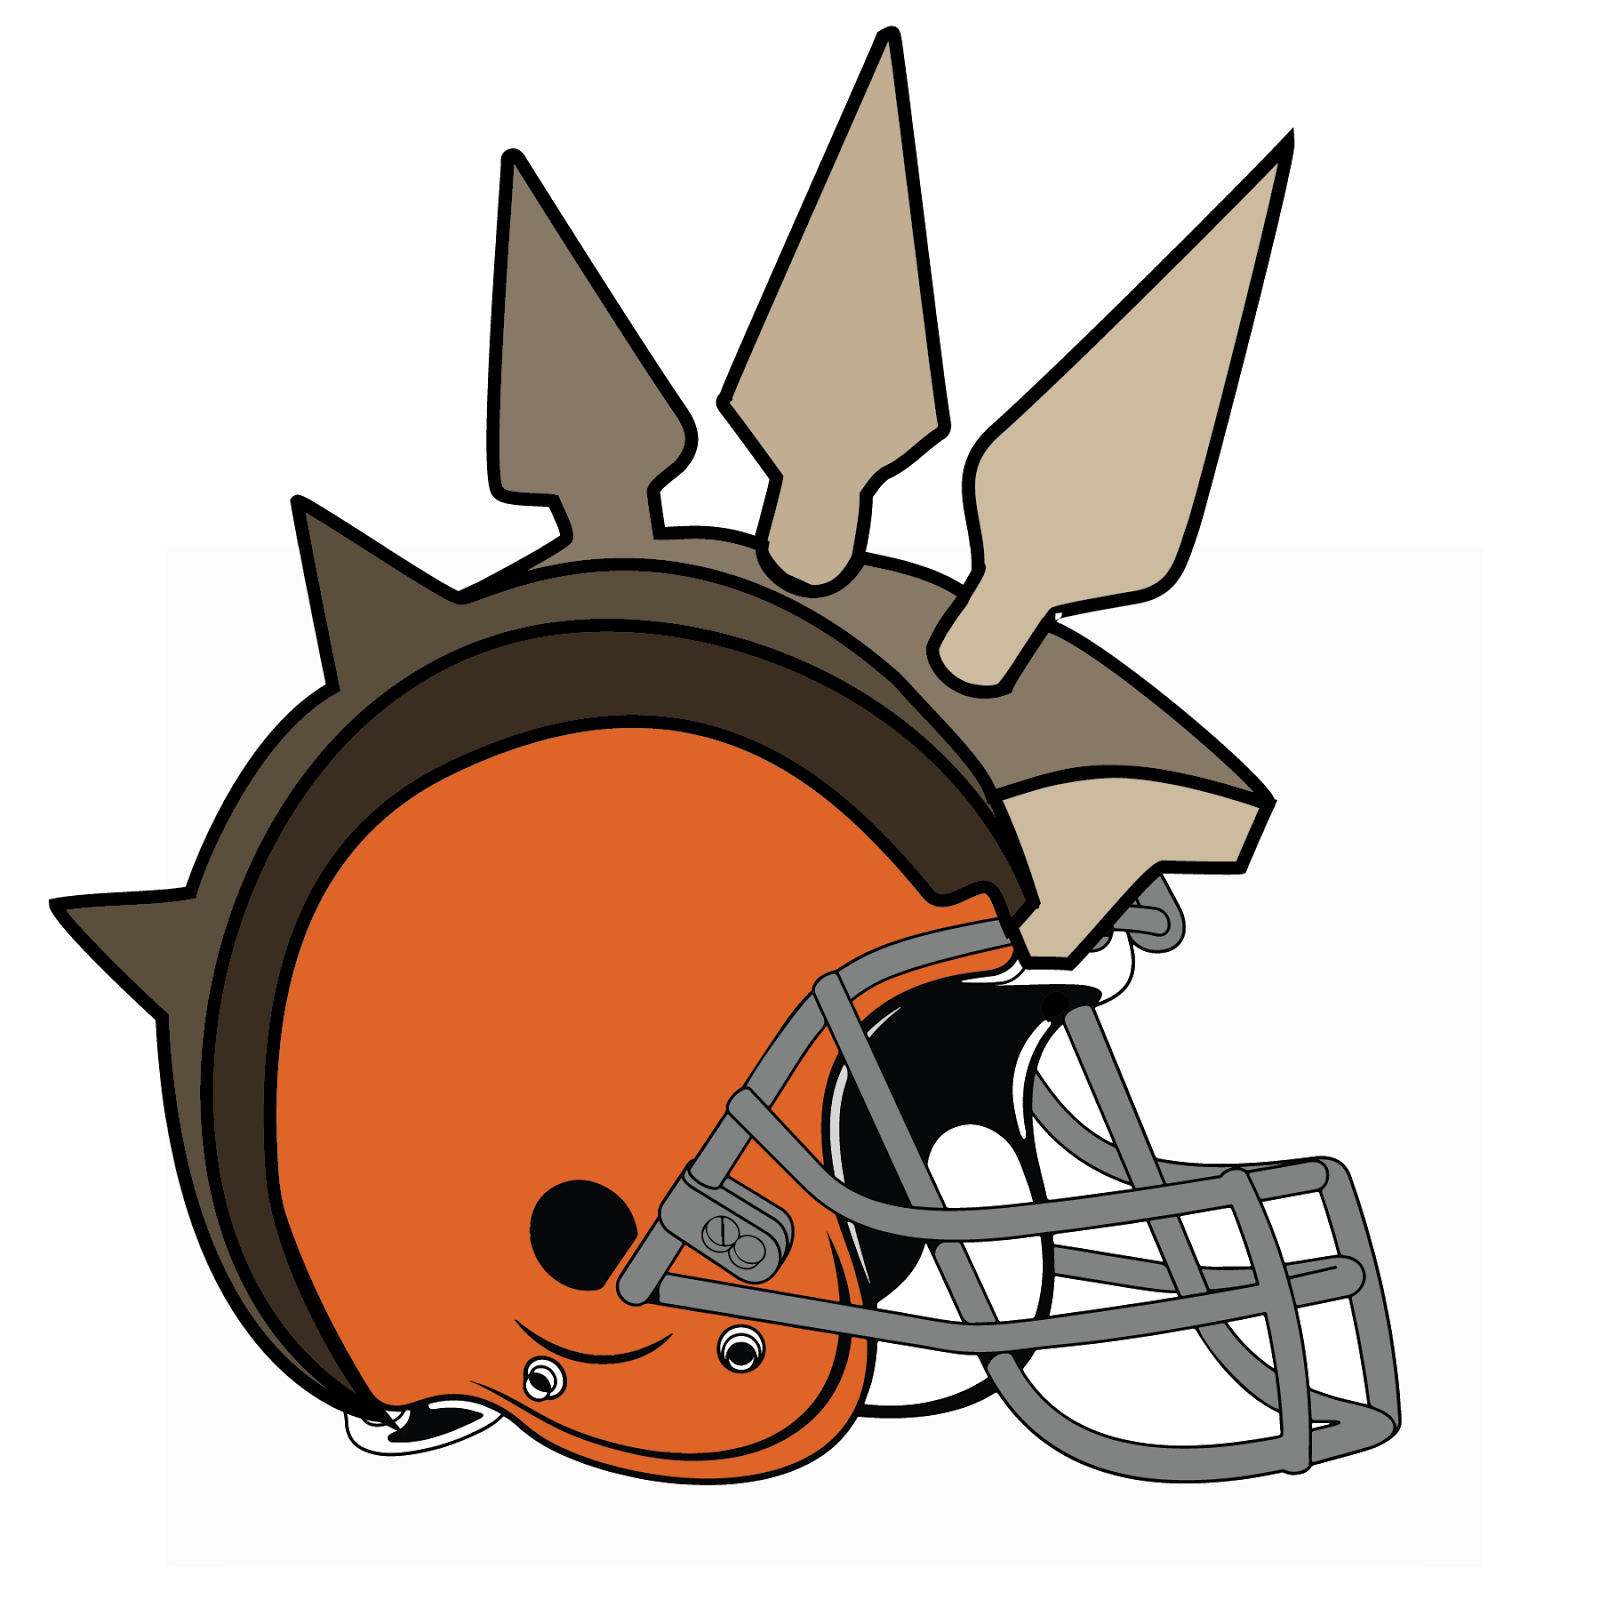 Cleveland Browns, metal, logo, re-imagined